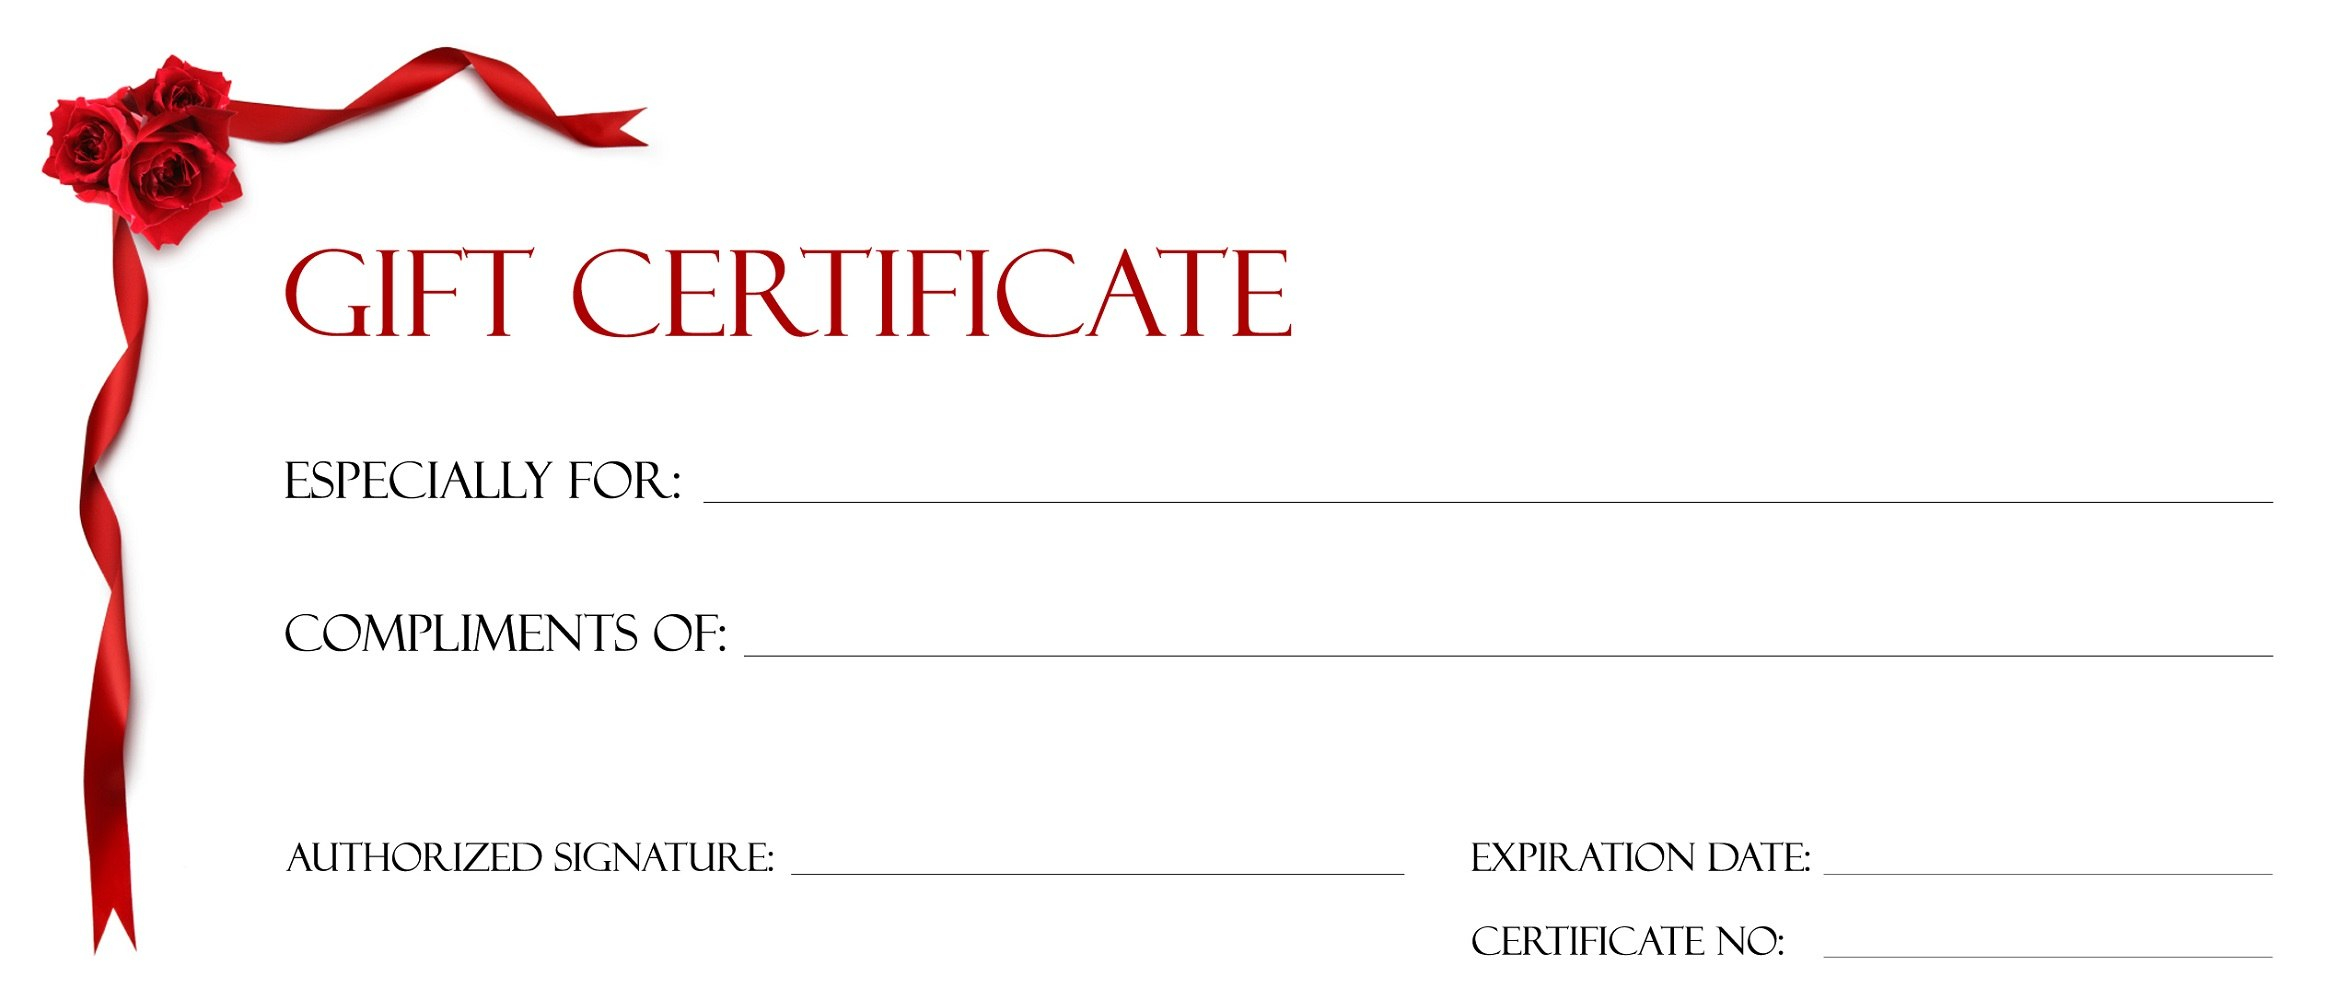 Gift Certificate Template Design Ideas Unusual For Free Download Throughout Indesign Gift Certificate Template